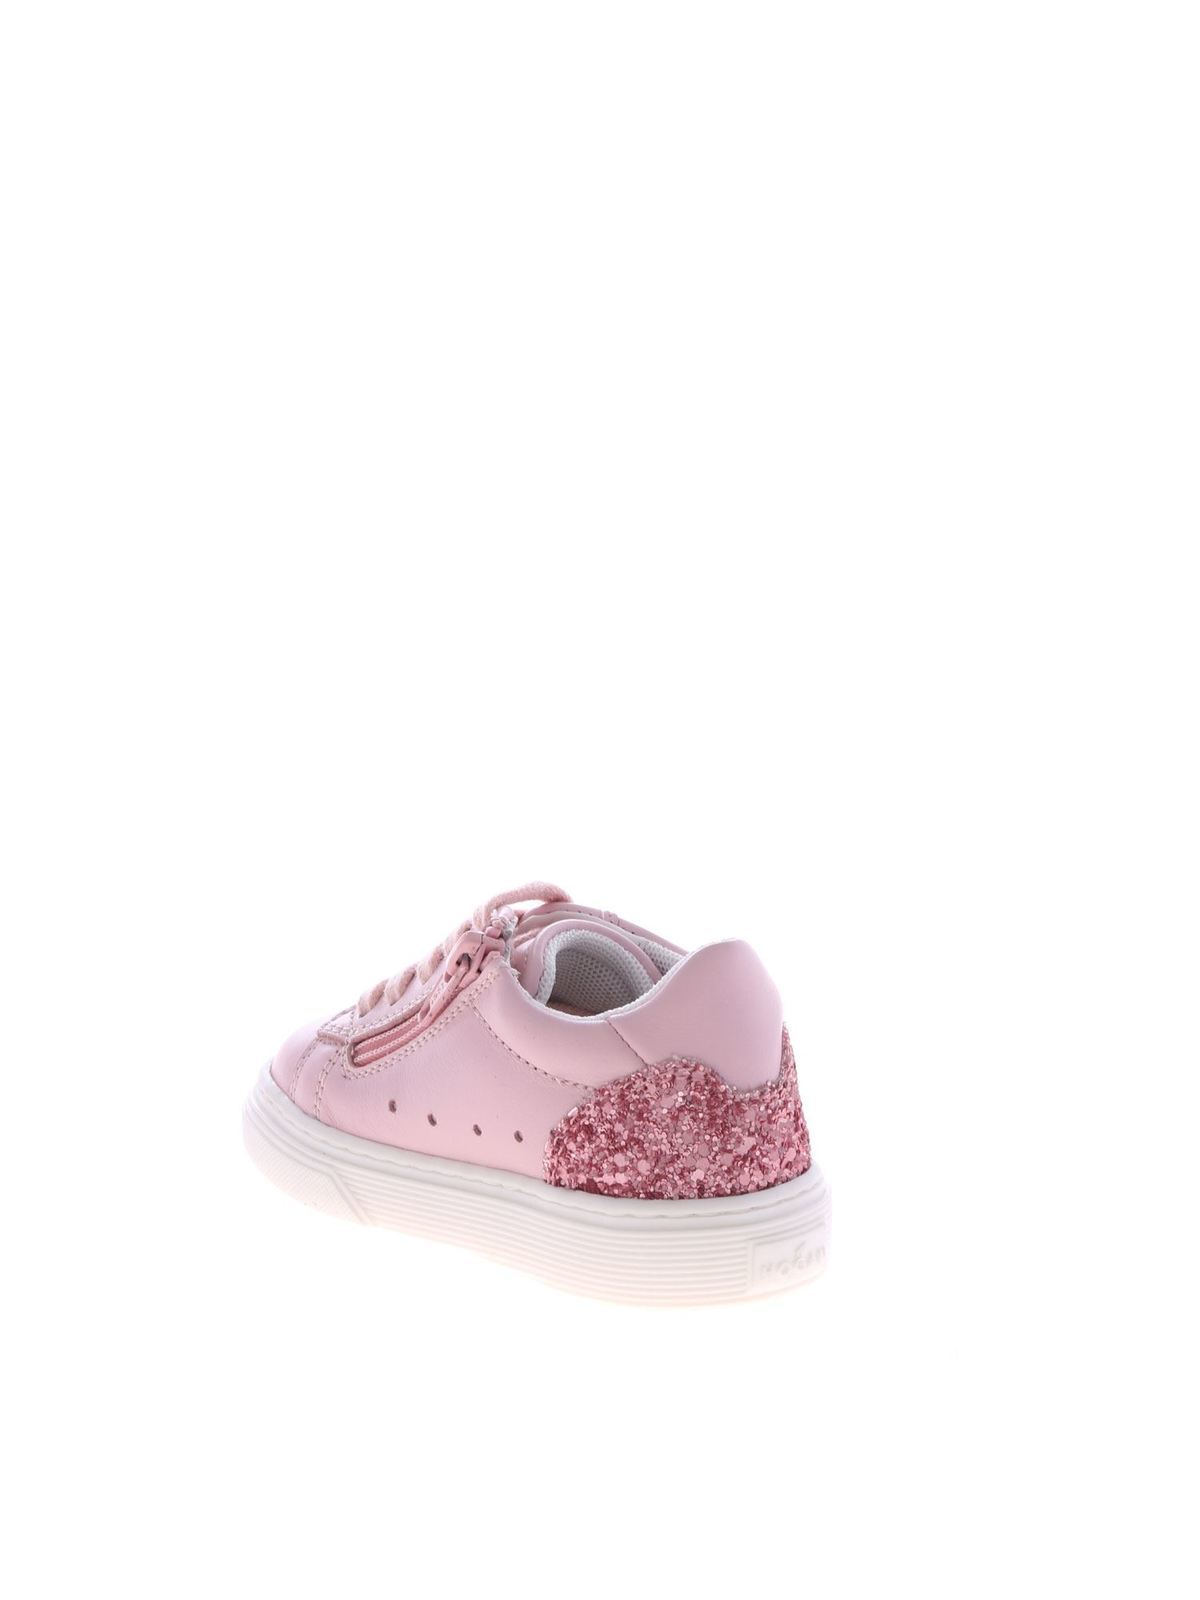 Hogan Junior - J340 sneakers in pink with glitter - trainers ...